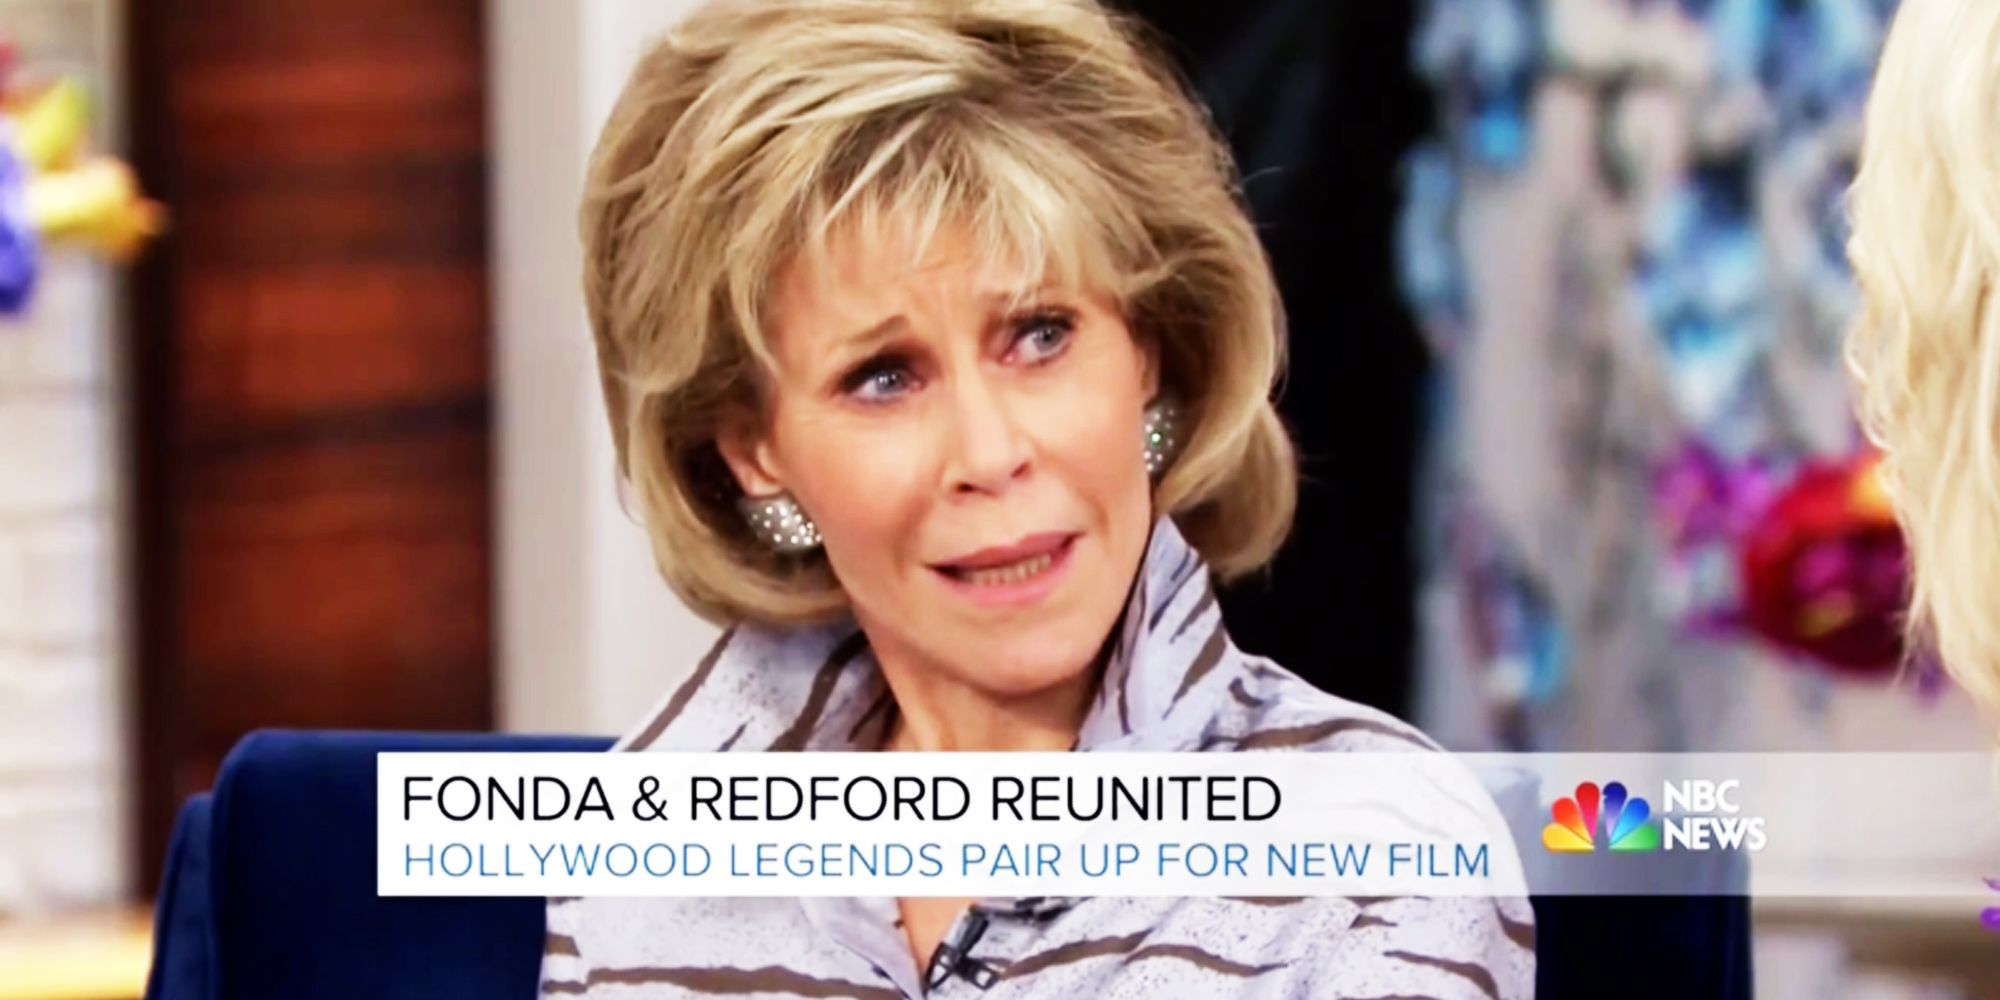 This Awkward Moment Between Jane Fonda and Megyn Kelly Is Going to Carry Me For the Rest of the Day